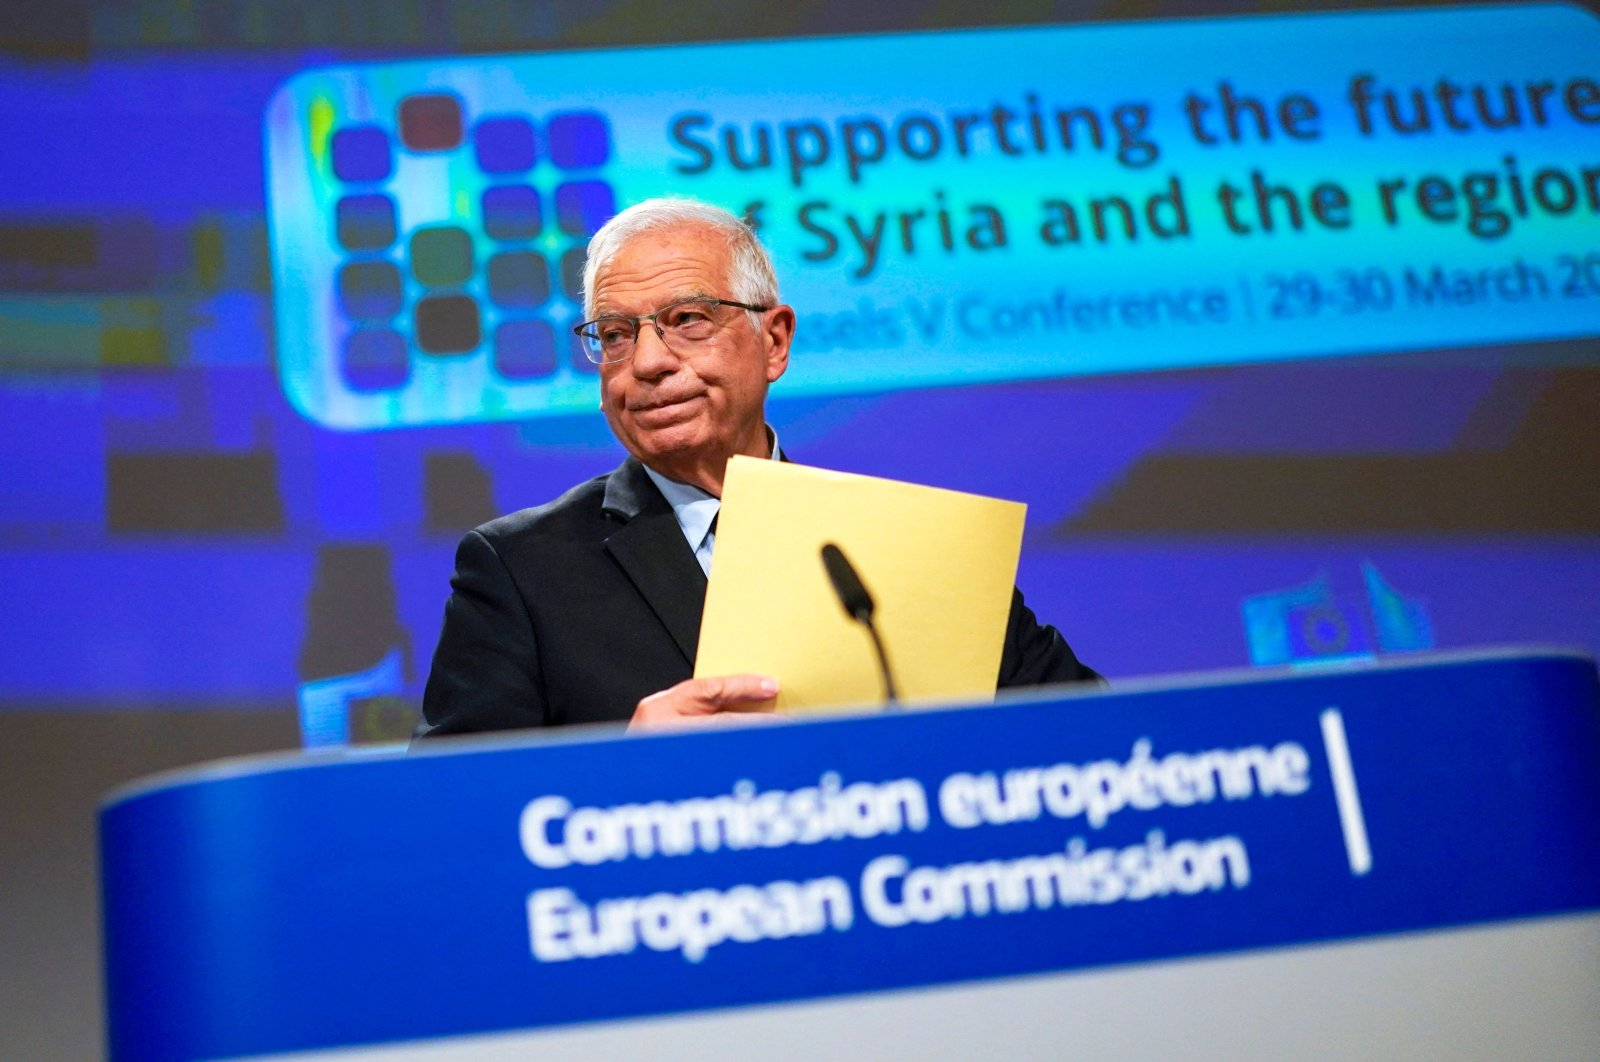 """European Union foreign policy chief Josep Borrell listens to a question during an online news conference at the conclusion of the conference """"Supporting the future of Syria and the region"""" at the European Commission headquarters in Brussels, Belgium, March 30, 2021. (Photo by Francisco Seco / POOL / AFP)"""